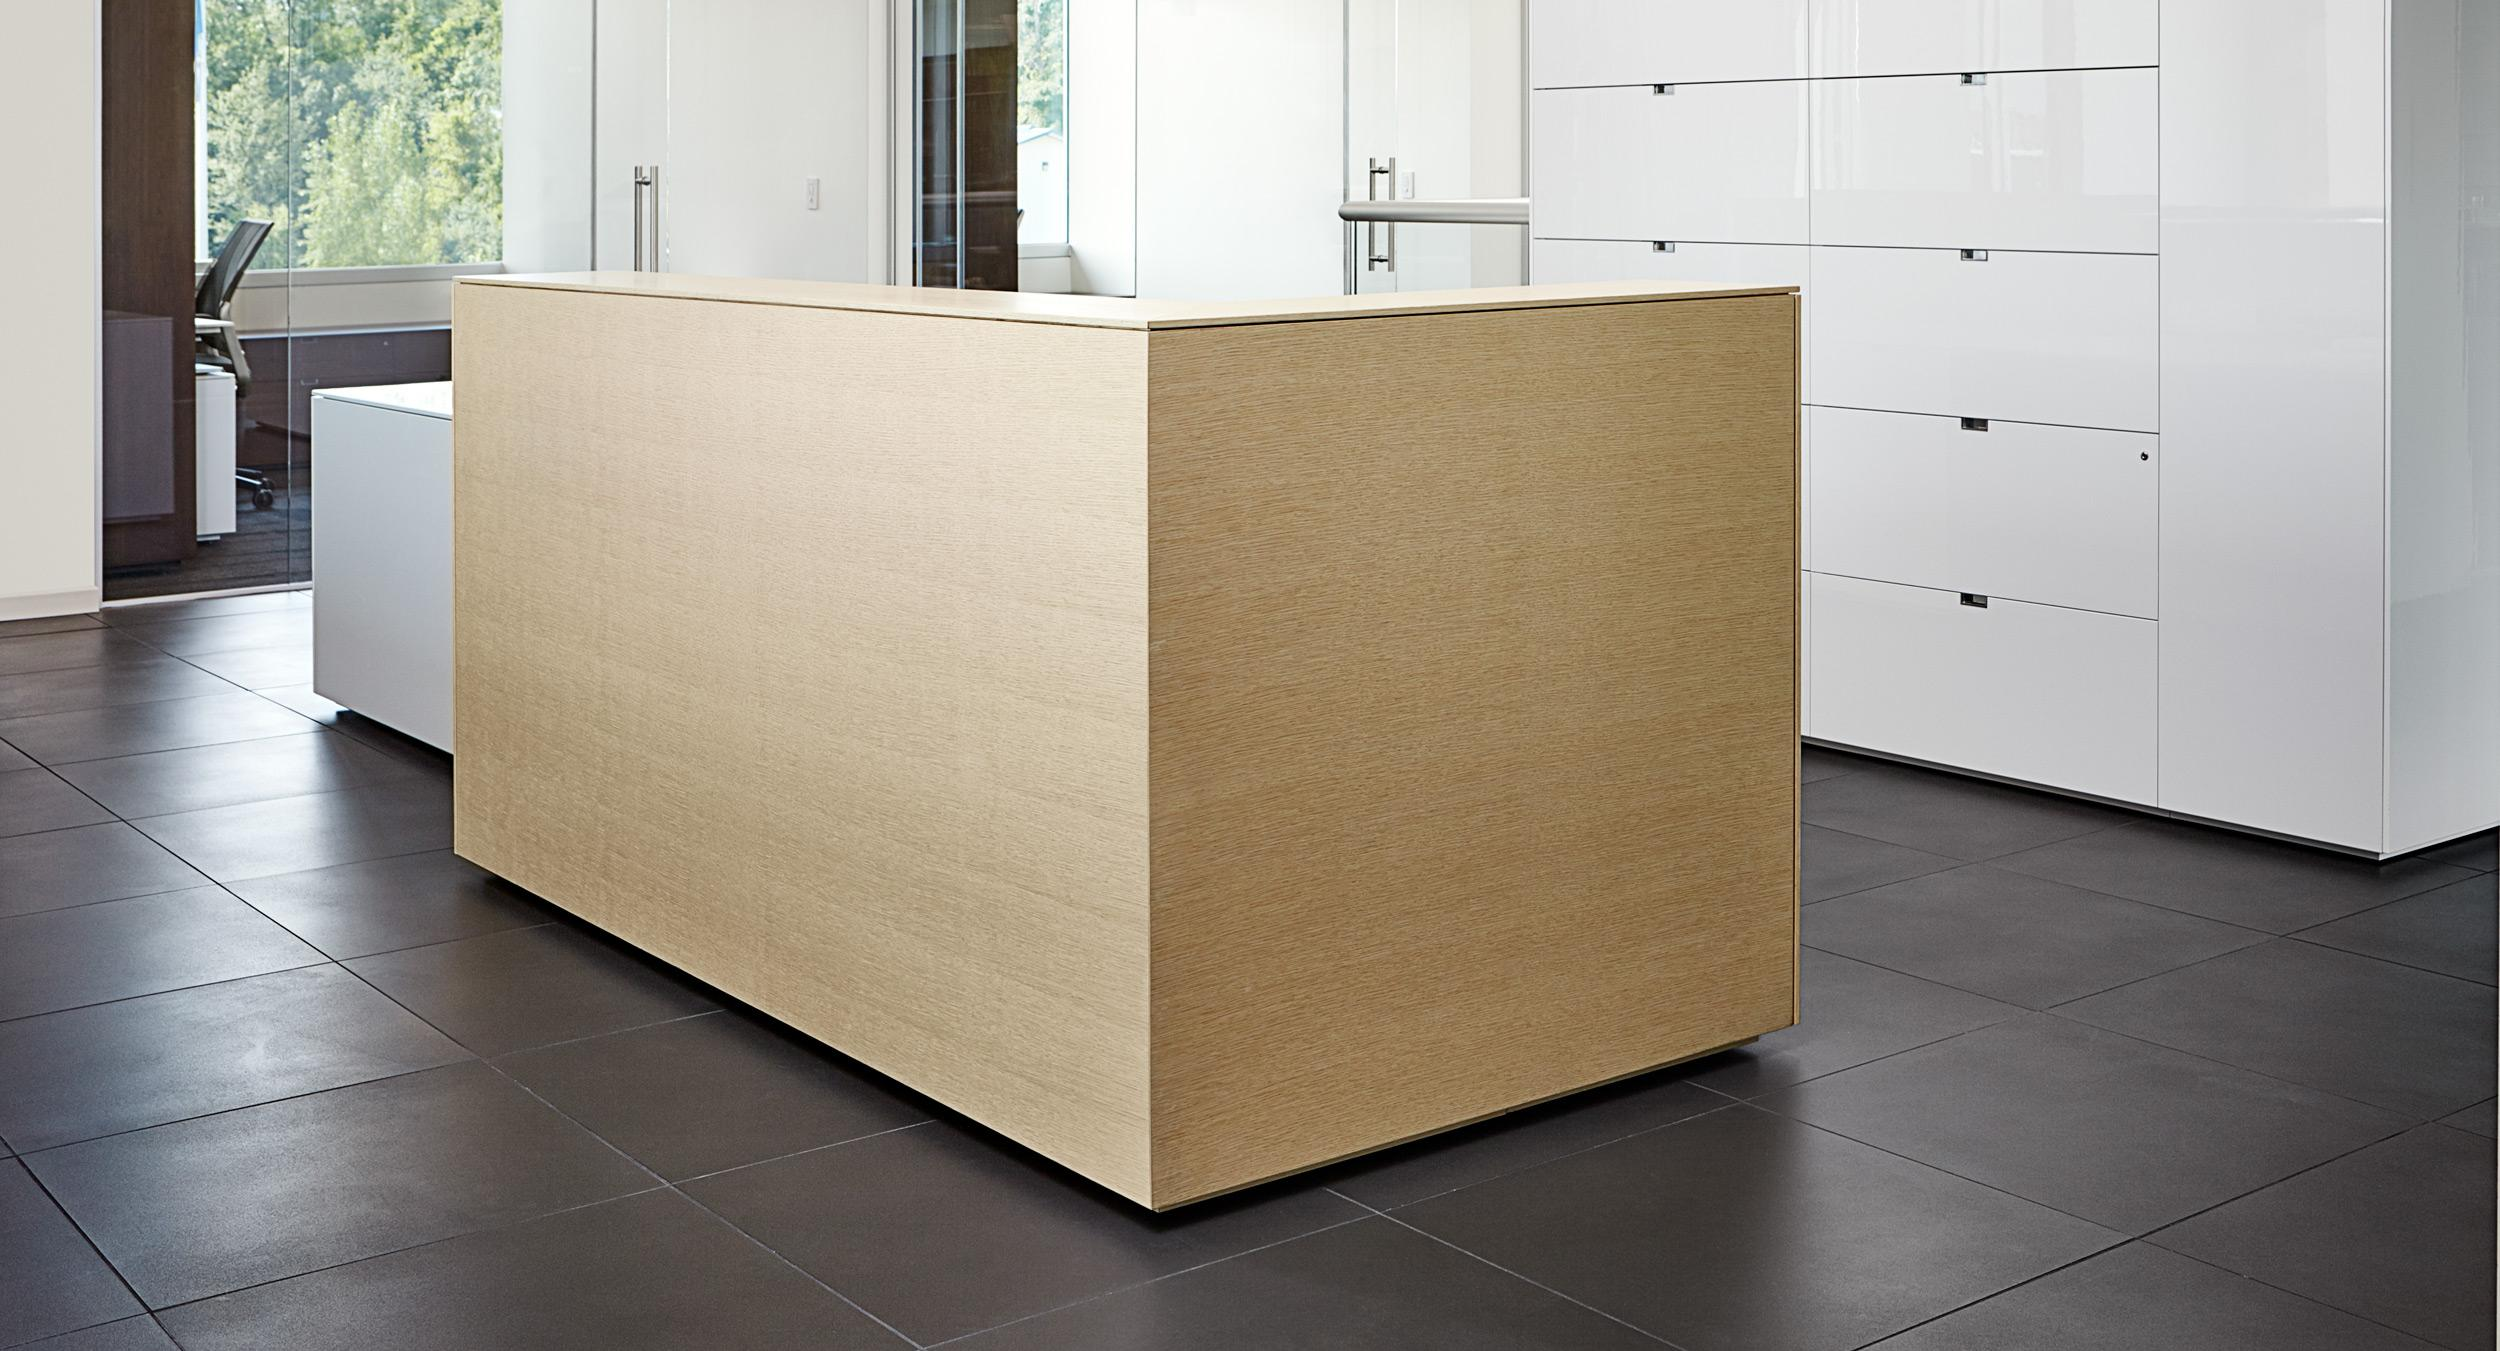 A Lex Reception Desk offers simple minimalism.